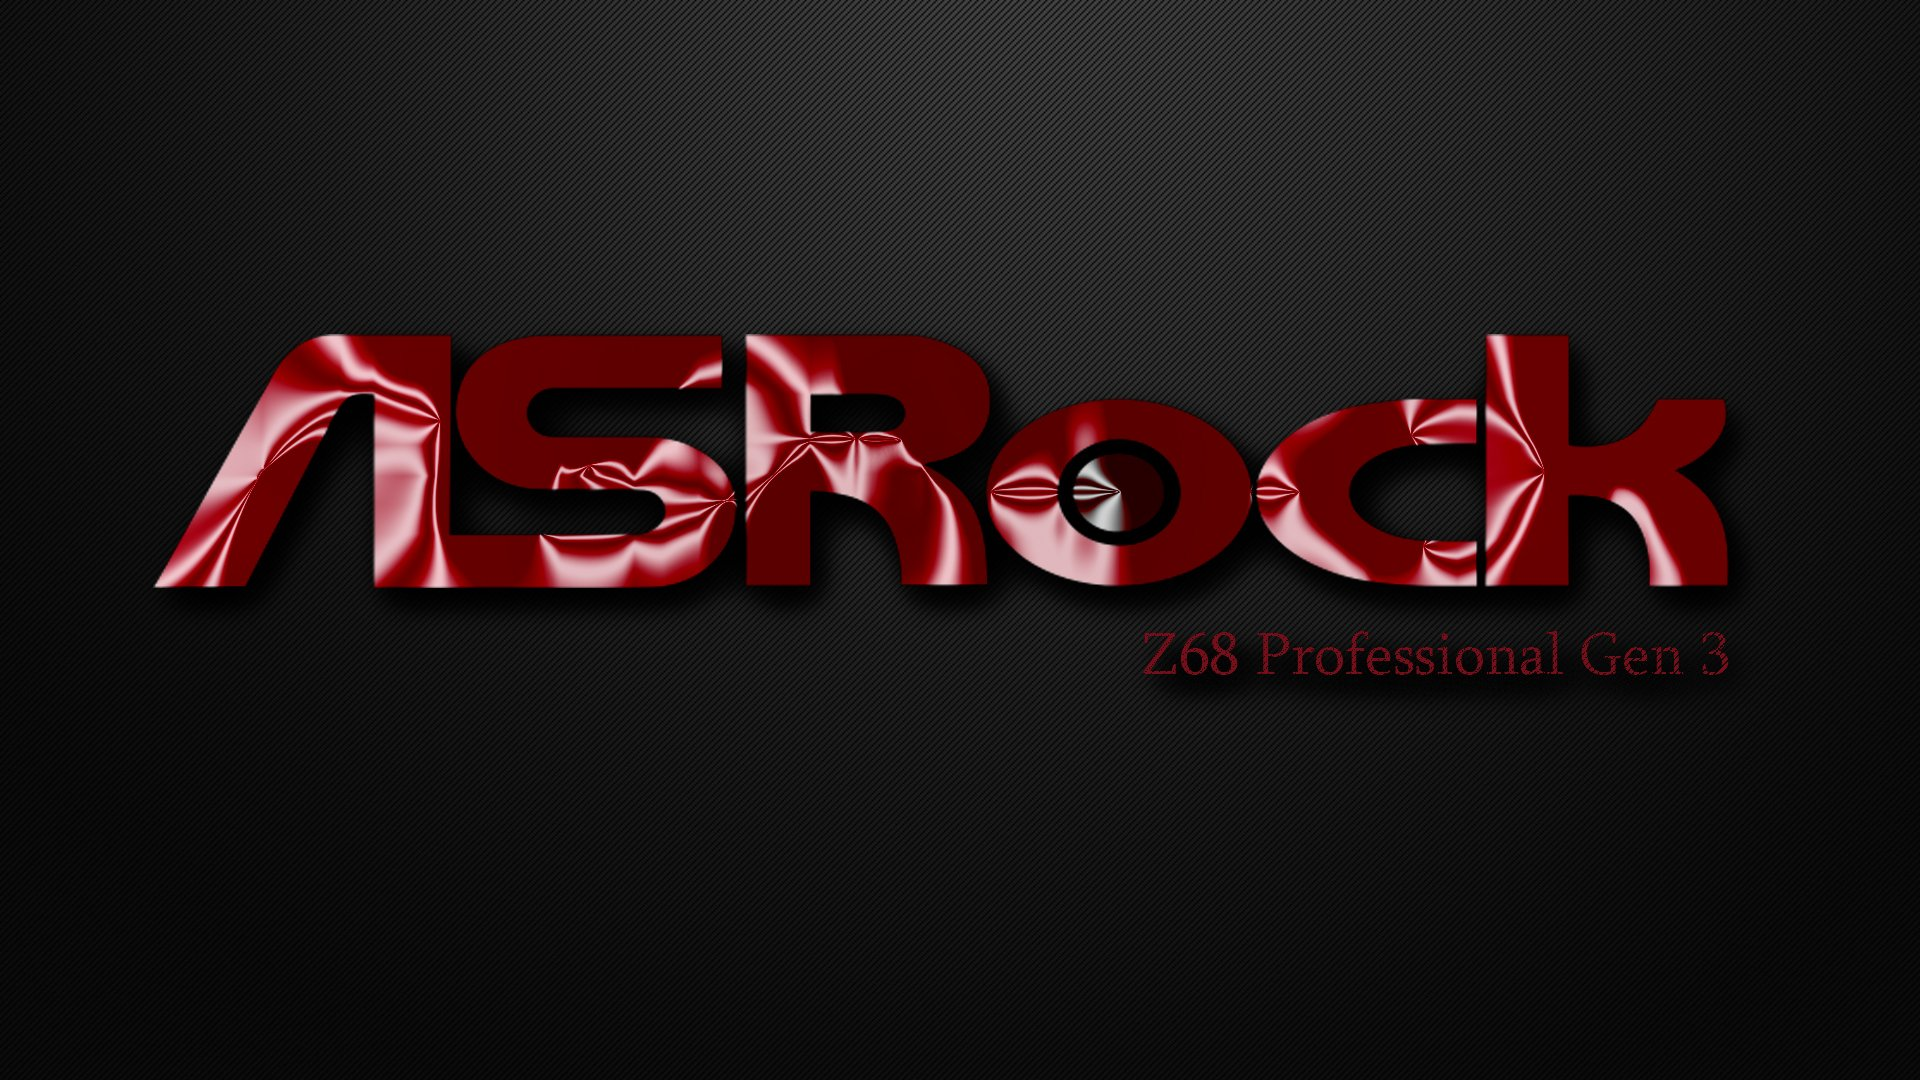 ASROCK GAMING MOTHERBOARD computer videogame game 20 wallpaper 1920x1080